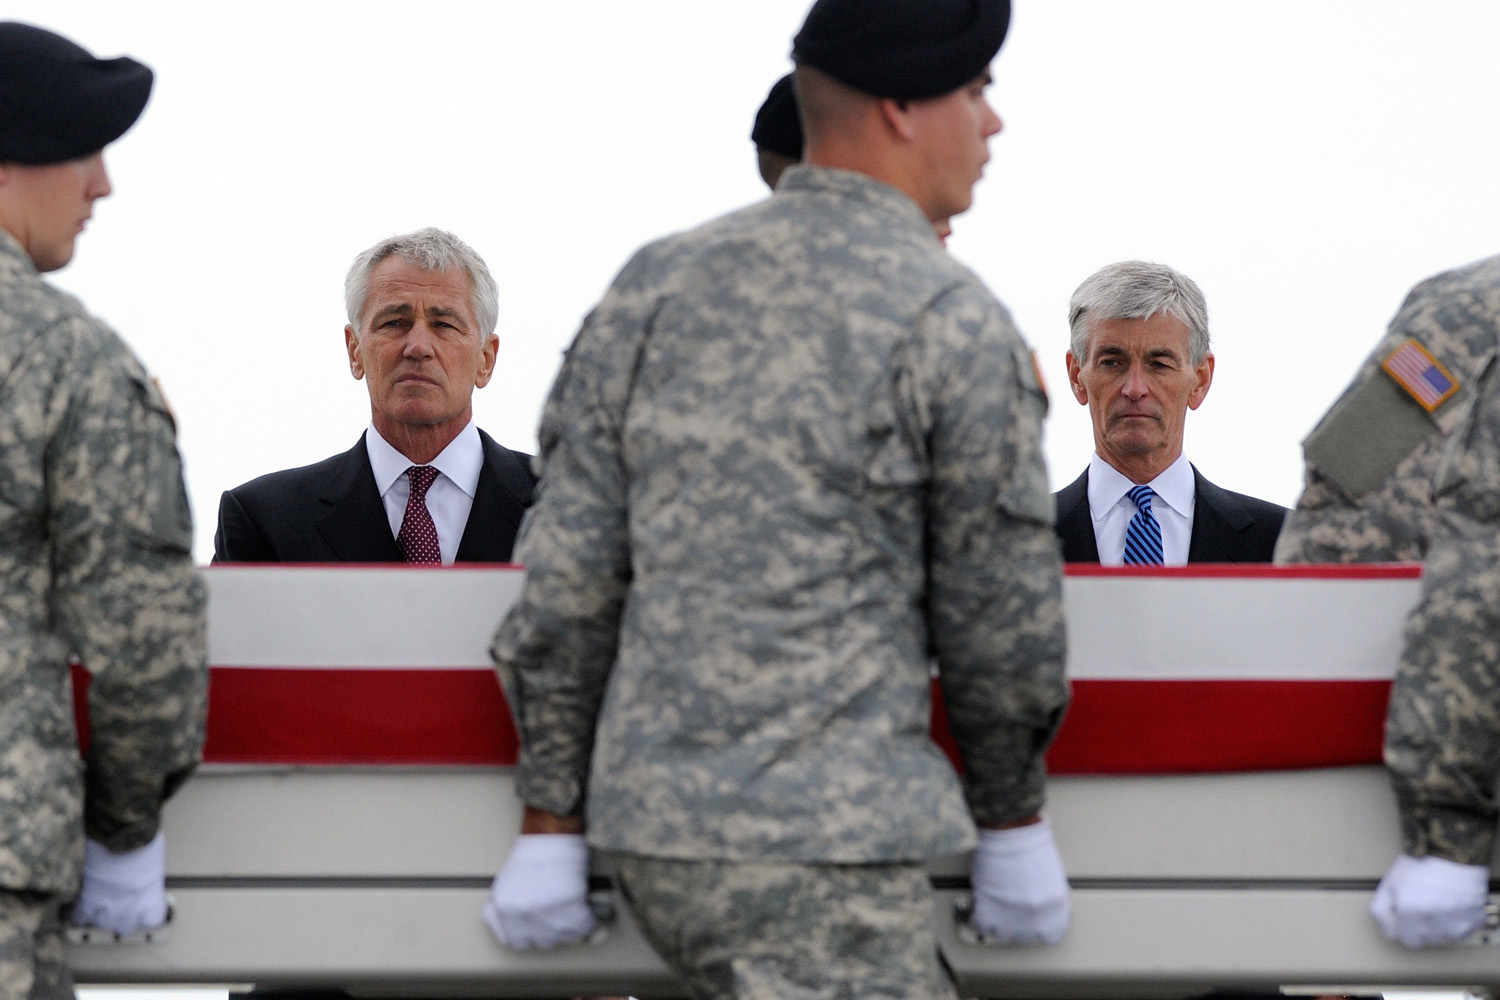 Oct. 9, 2013. Defense Secretary Chuck Hagel, left, and Army Secretary John McHugh, right, watch an Army carry team move a transfer case containing the remains of Pfc. Cody J. Patterson at Dover Air Force Base, Del.